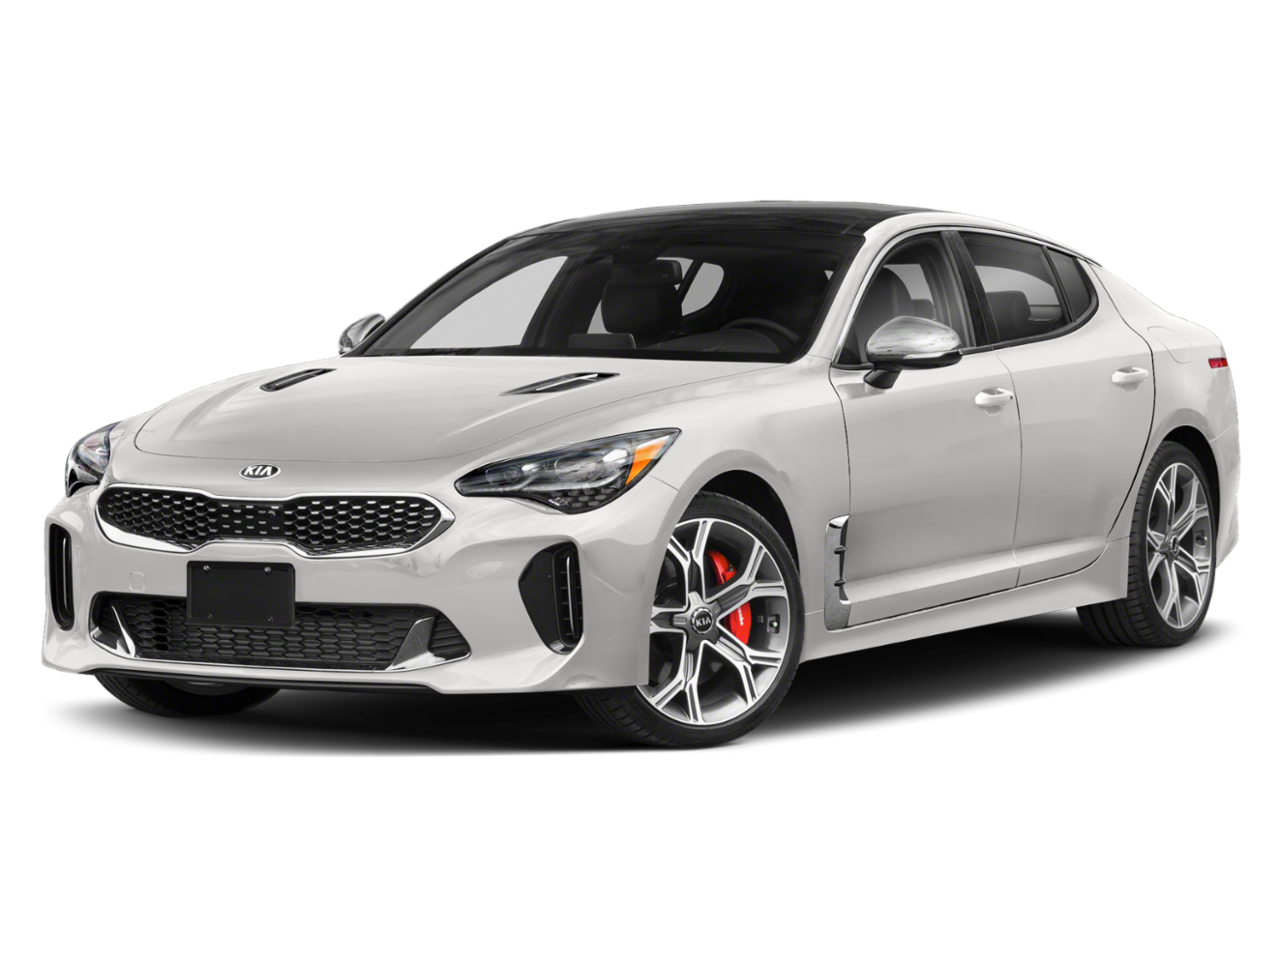 New 2021 Kia Stinger GT